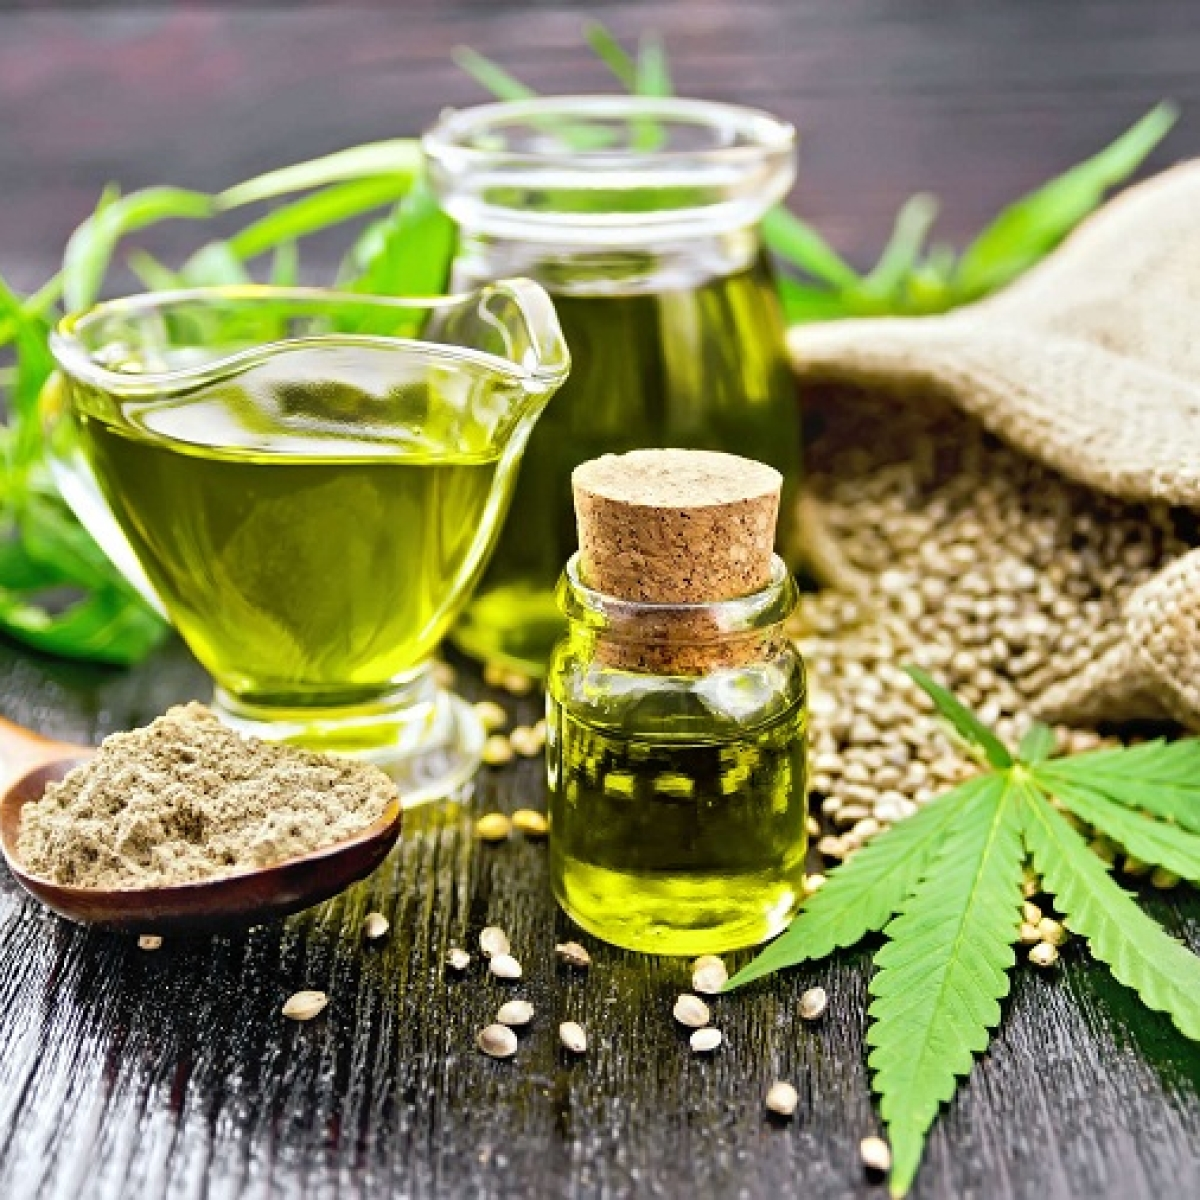 Cooking with Hemp: The new superfood that has made inroads in our kitchens